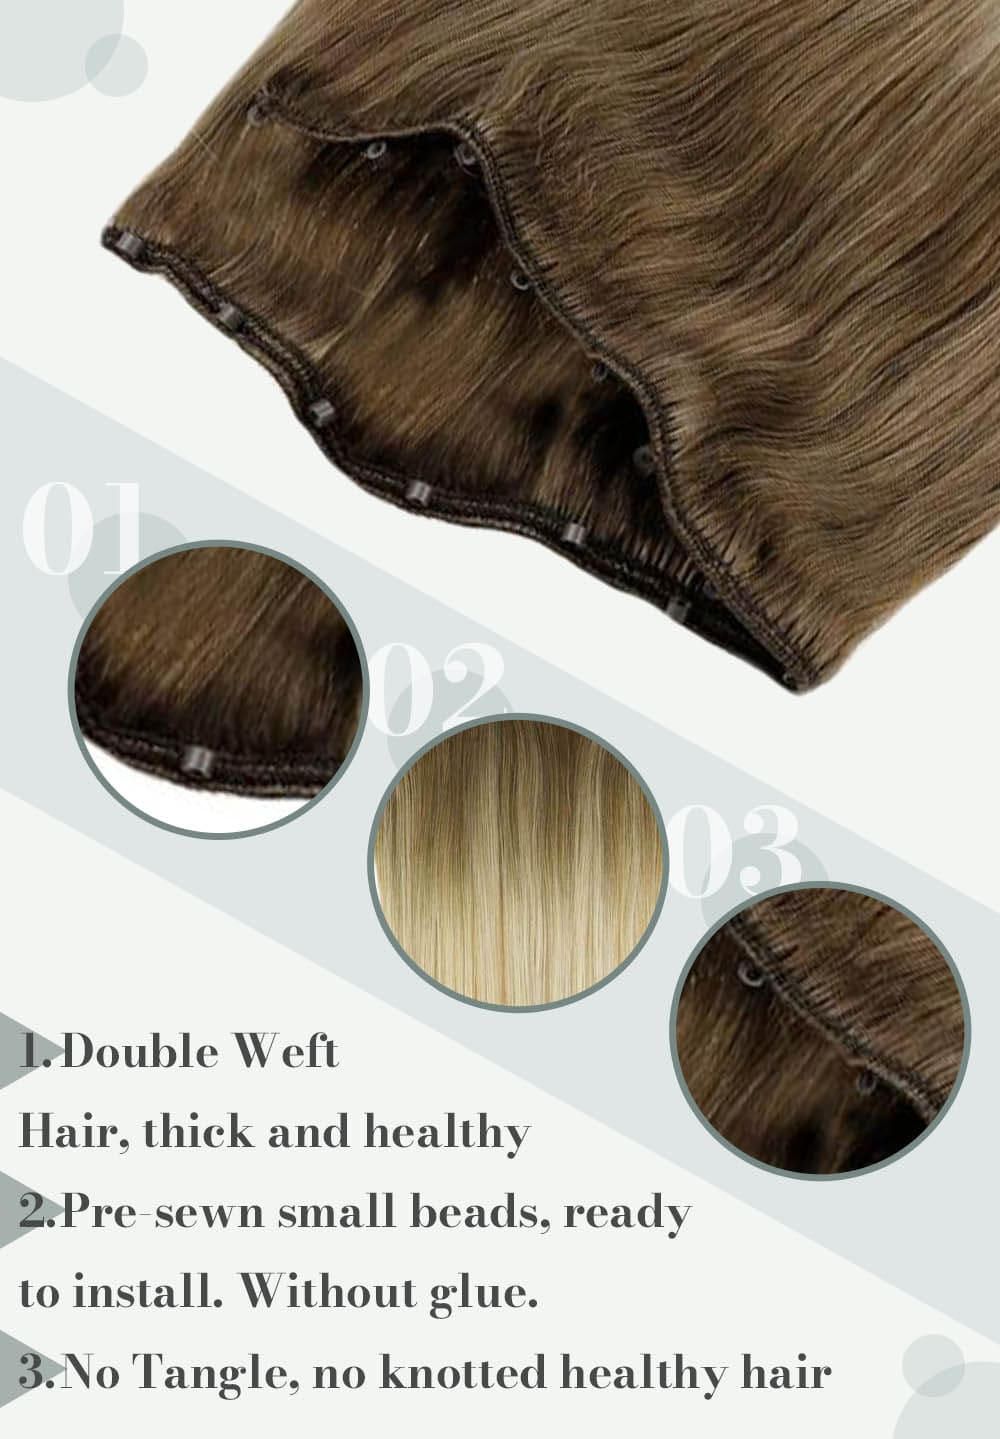 #8 59 balayage blonde hair color micro hair weft human hair extensions can be dyed and straighten